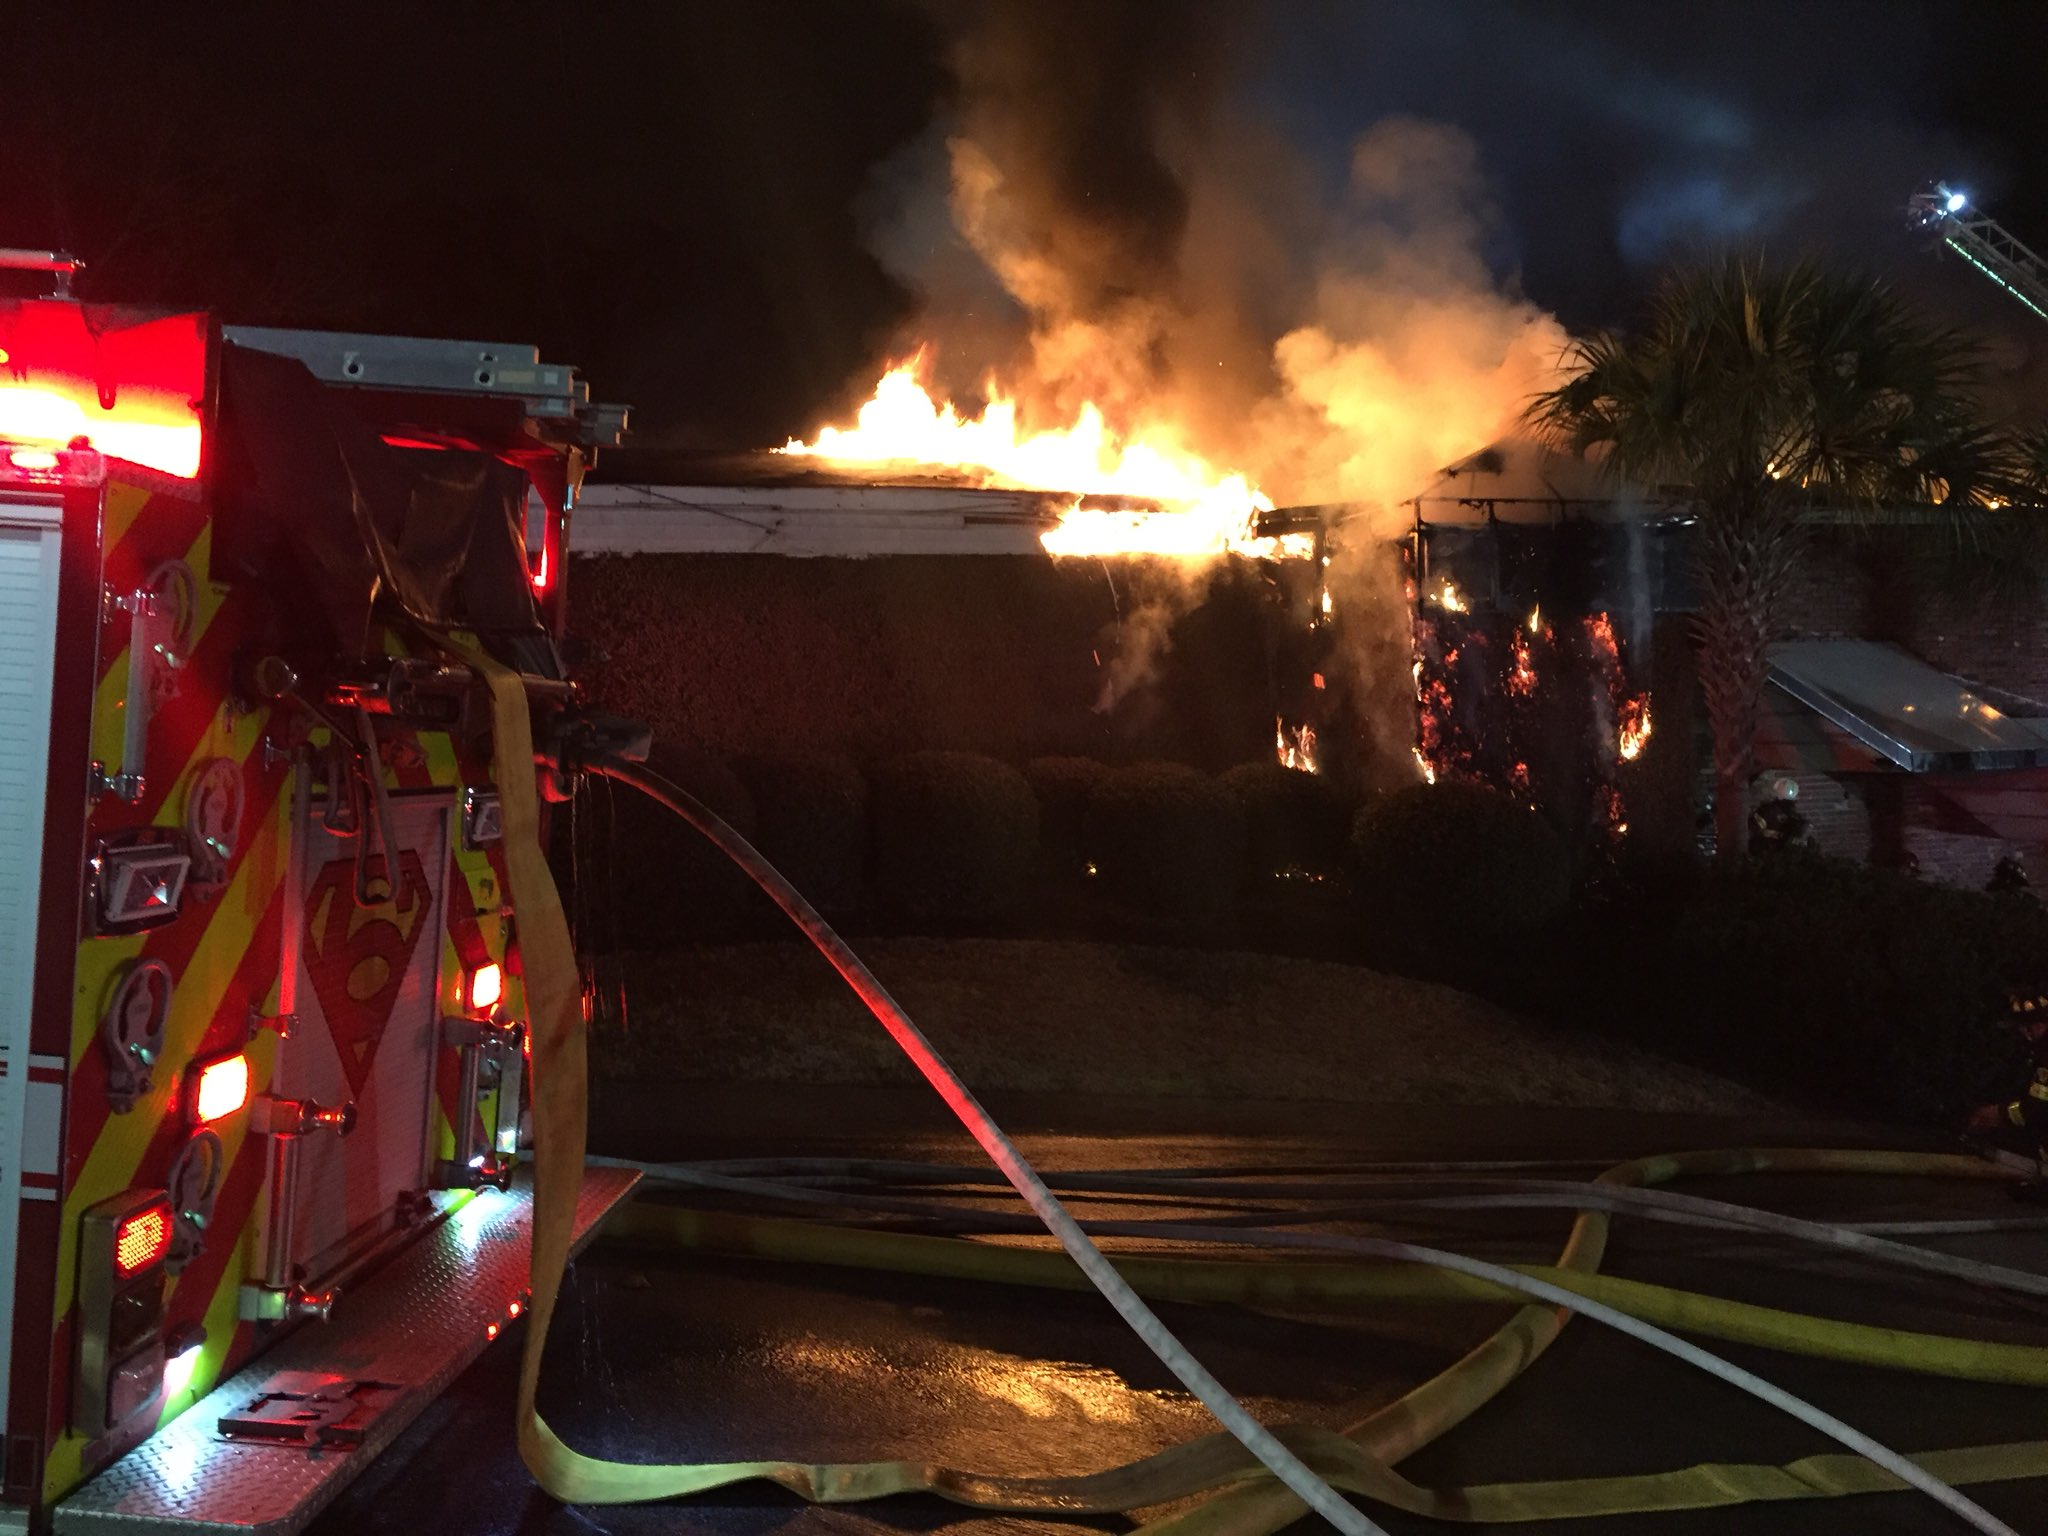 Columbia Strip Club Goes up in Flames ABC Columbia